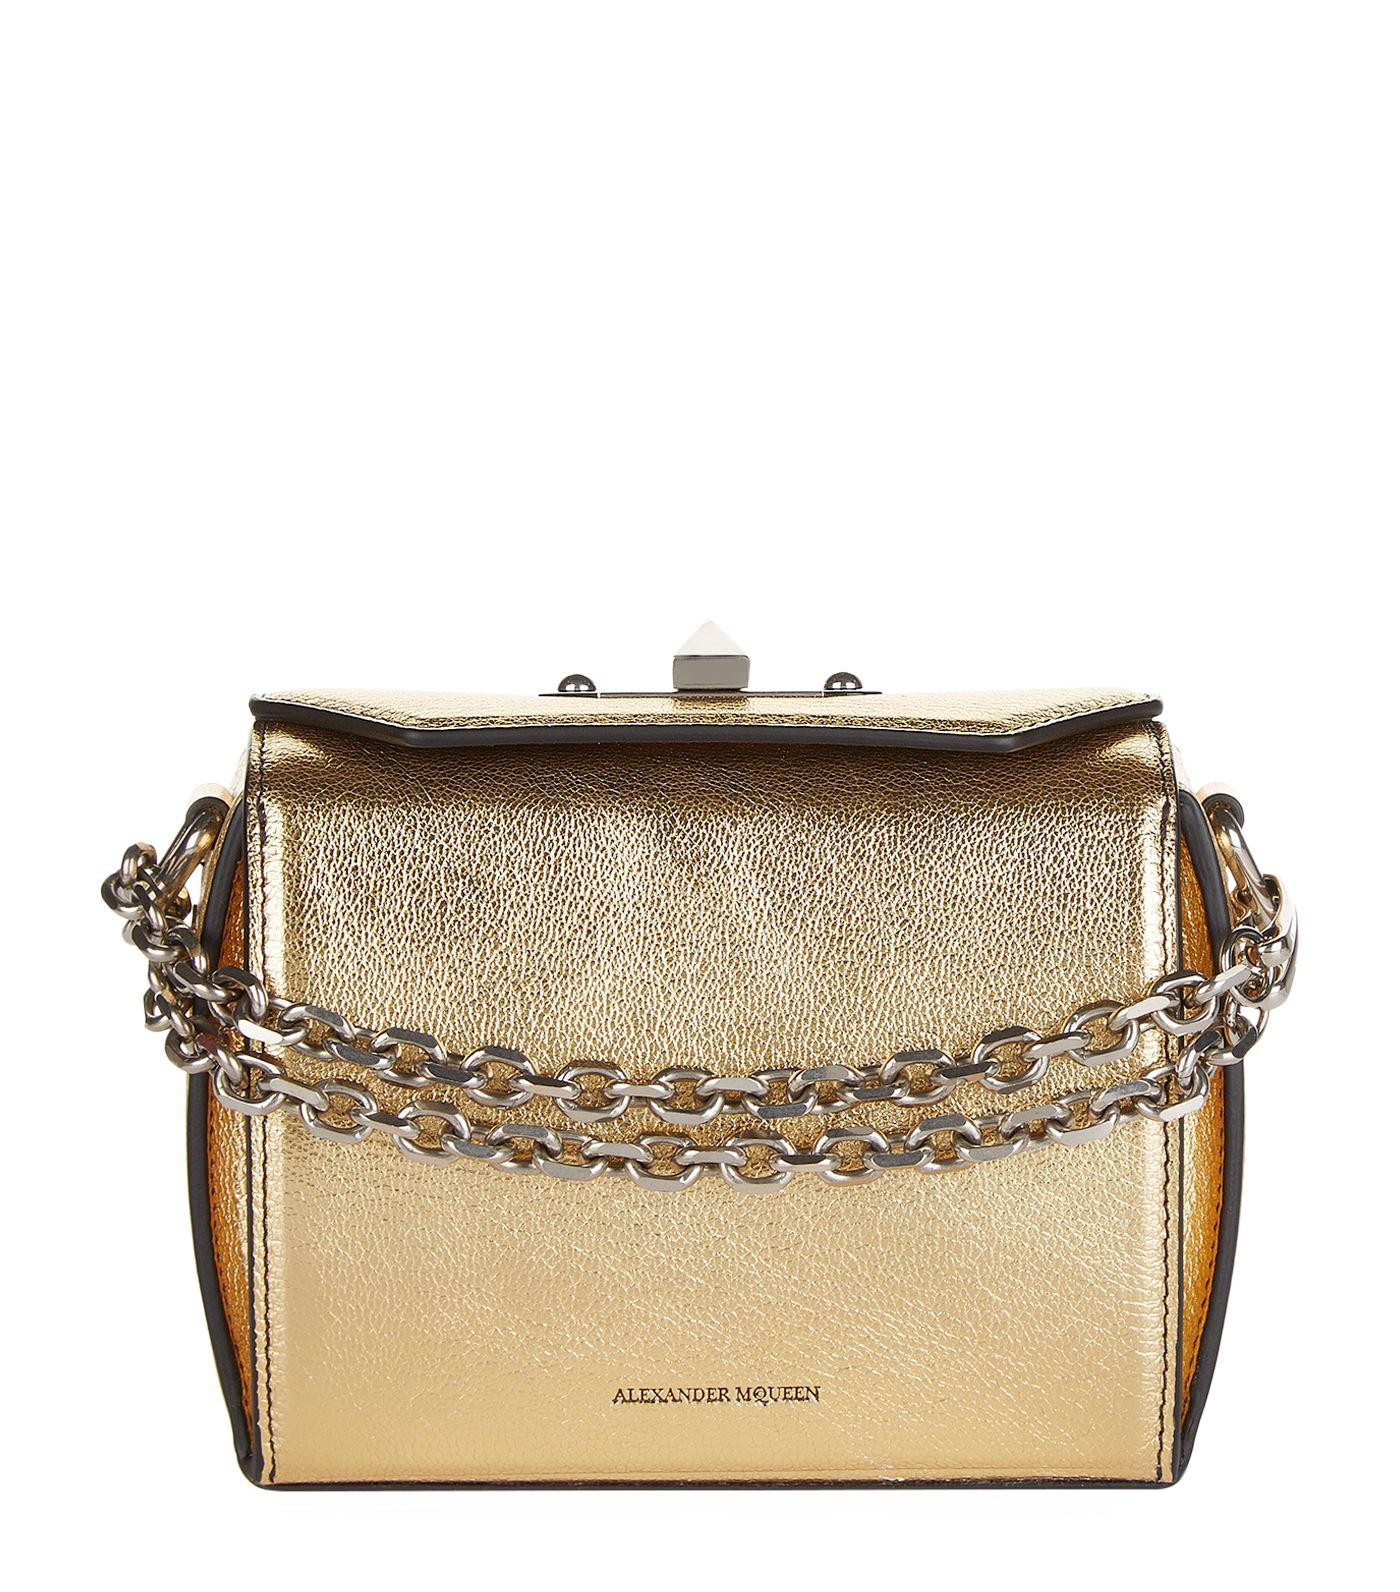 Box Chain Bag - Only One Size / Pink Alexander McQueen Low Shipping Sale Shop QhGkVY9i1